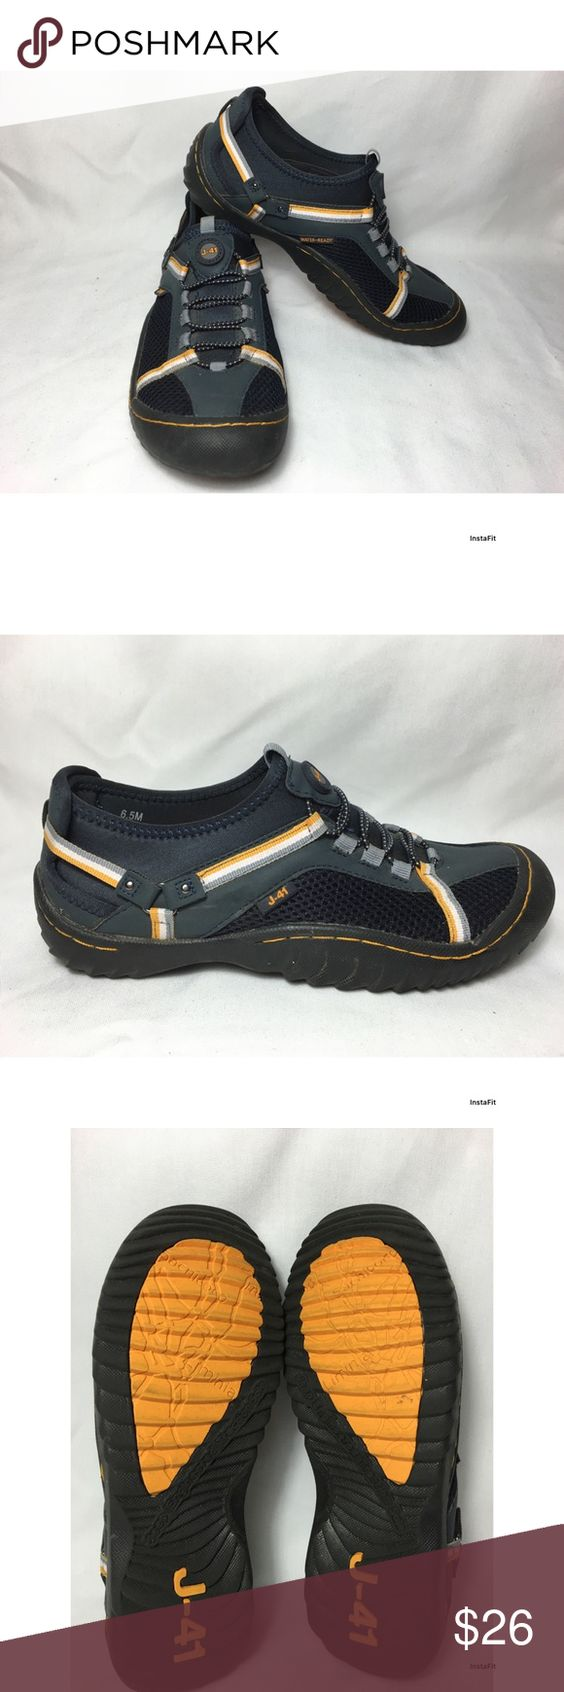 J-41 by Jeep sport sneakers These are J-41 Jeep engineered traction sole and water-ready sport shoes. These shoes are semi used but are in excellent condition. Jeep Shoes Athletic Shoes